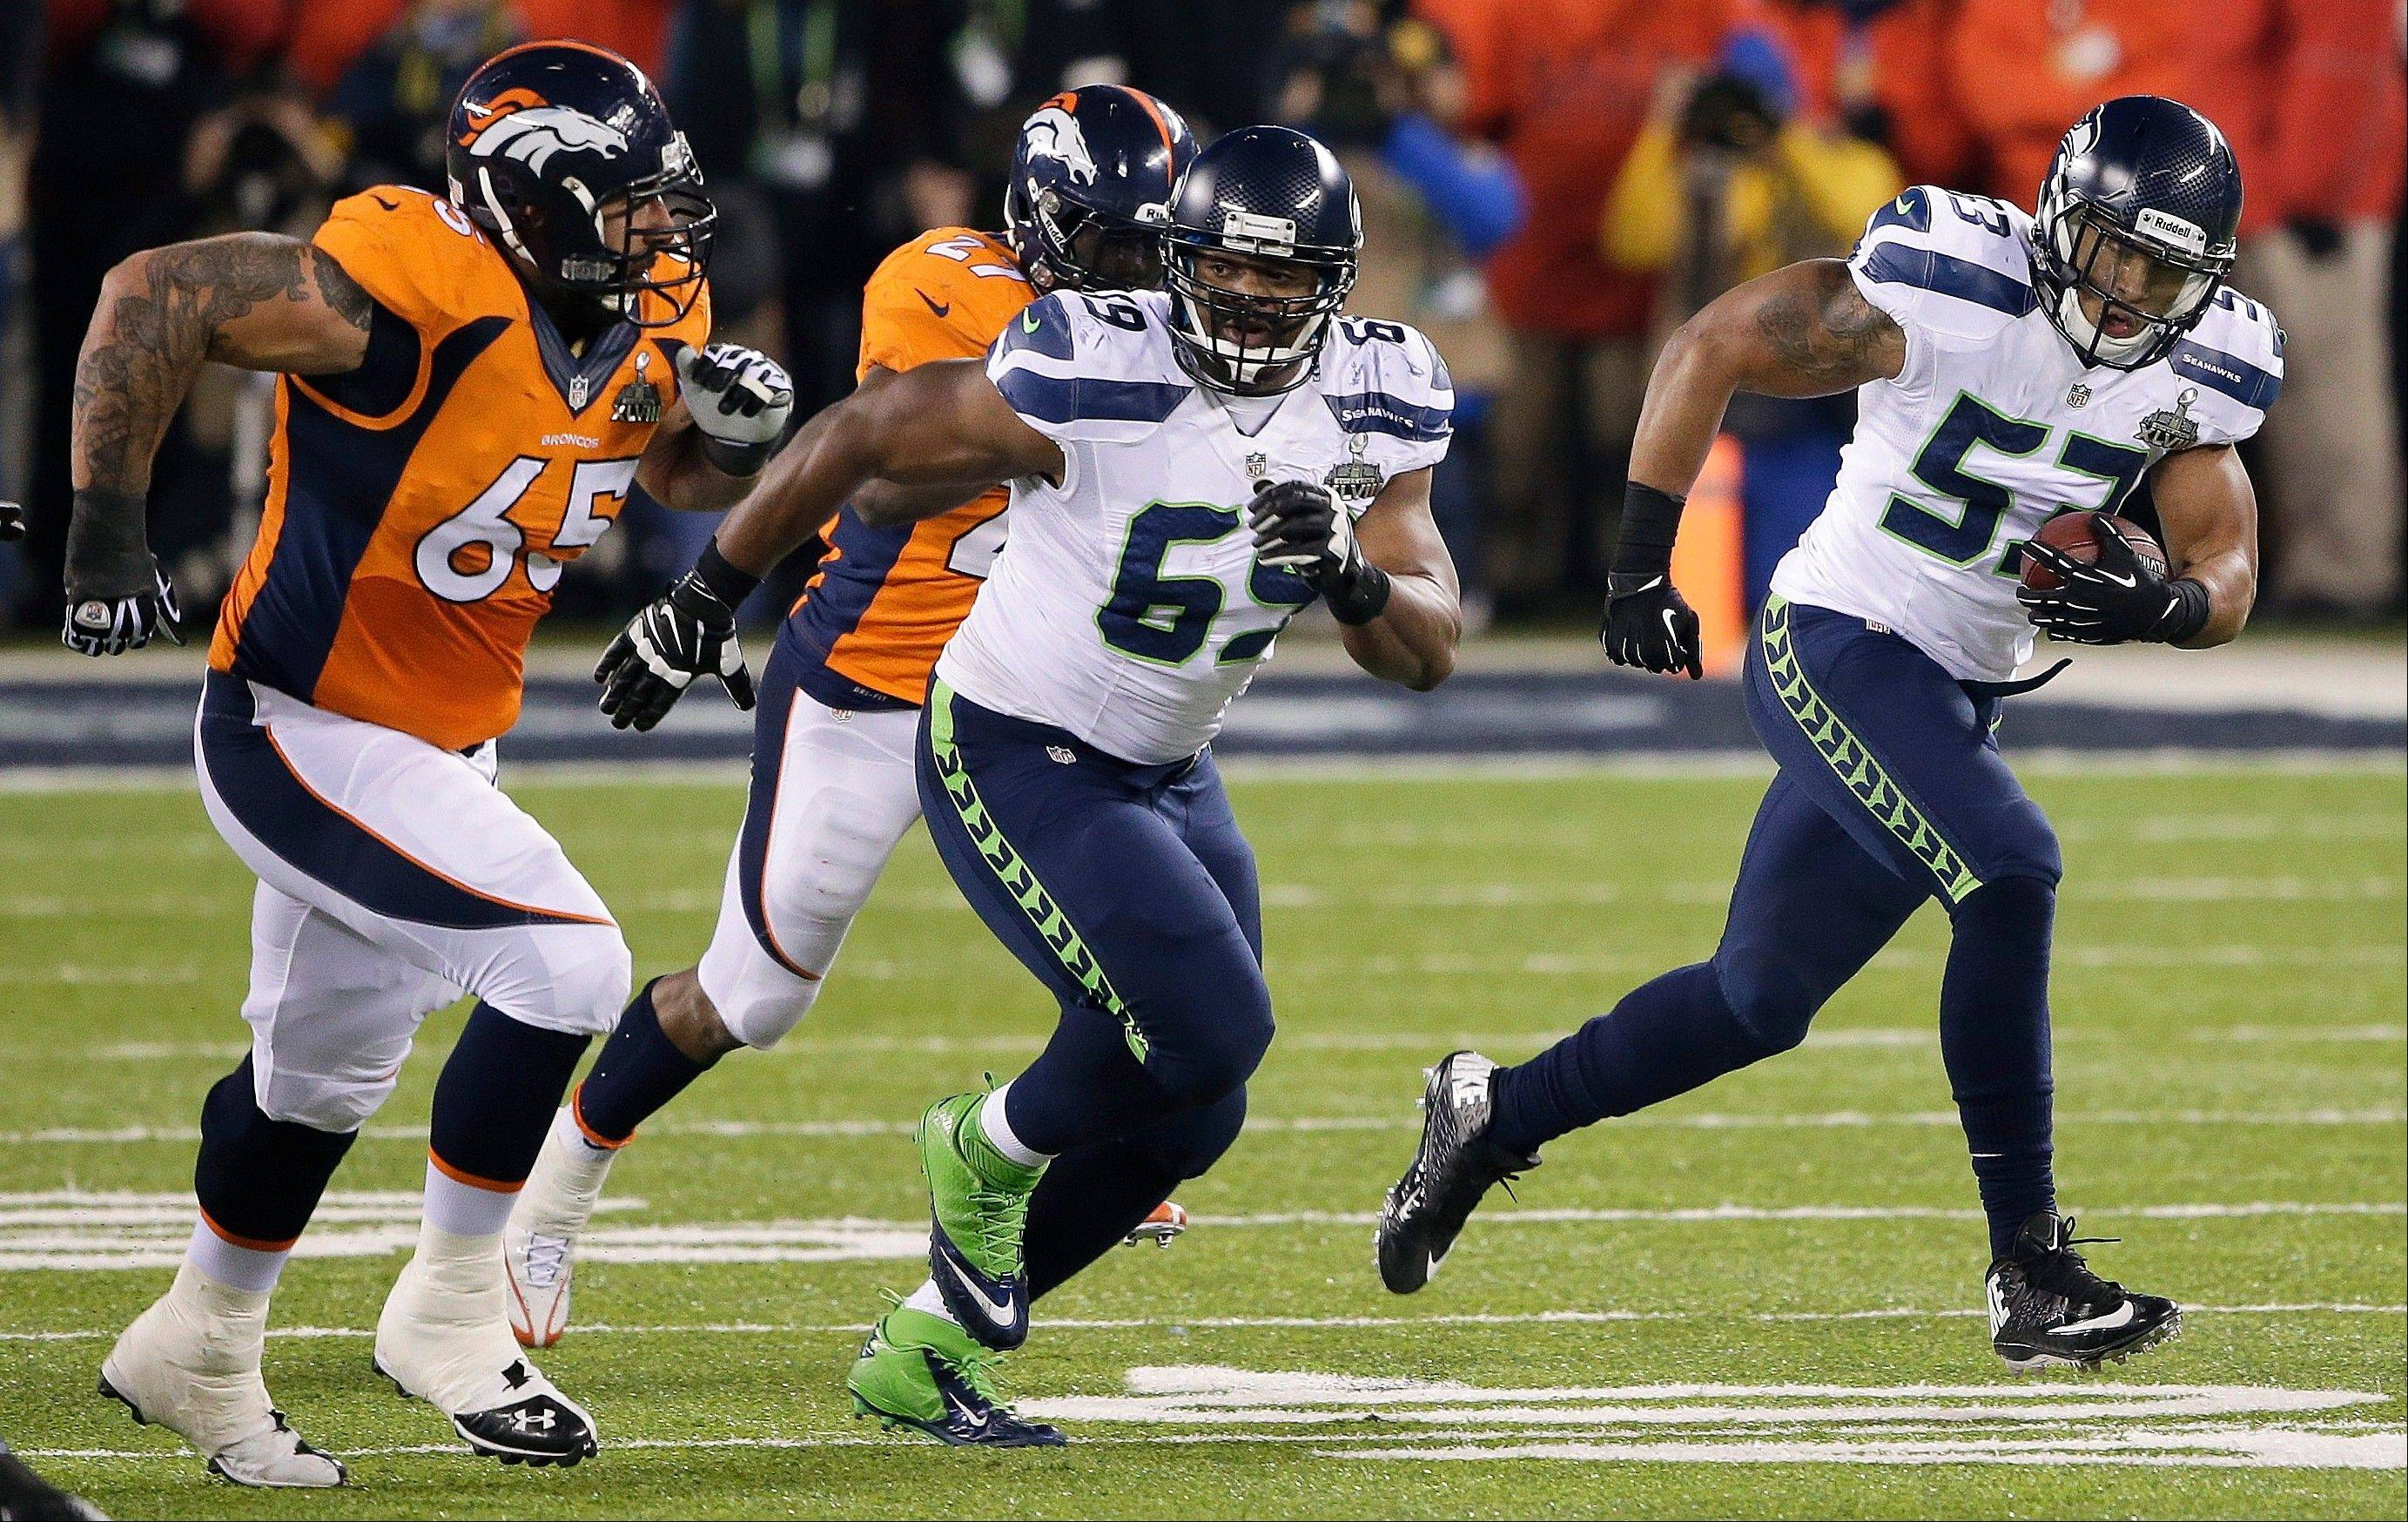 Seattle Seahawks outside linebacker Malcolm Smith (53) breaks down the field to return an interception for a touchdown against the Denver Broncos during the first half.